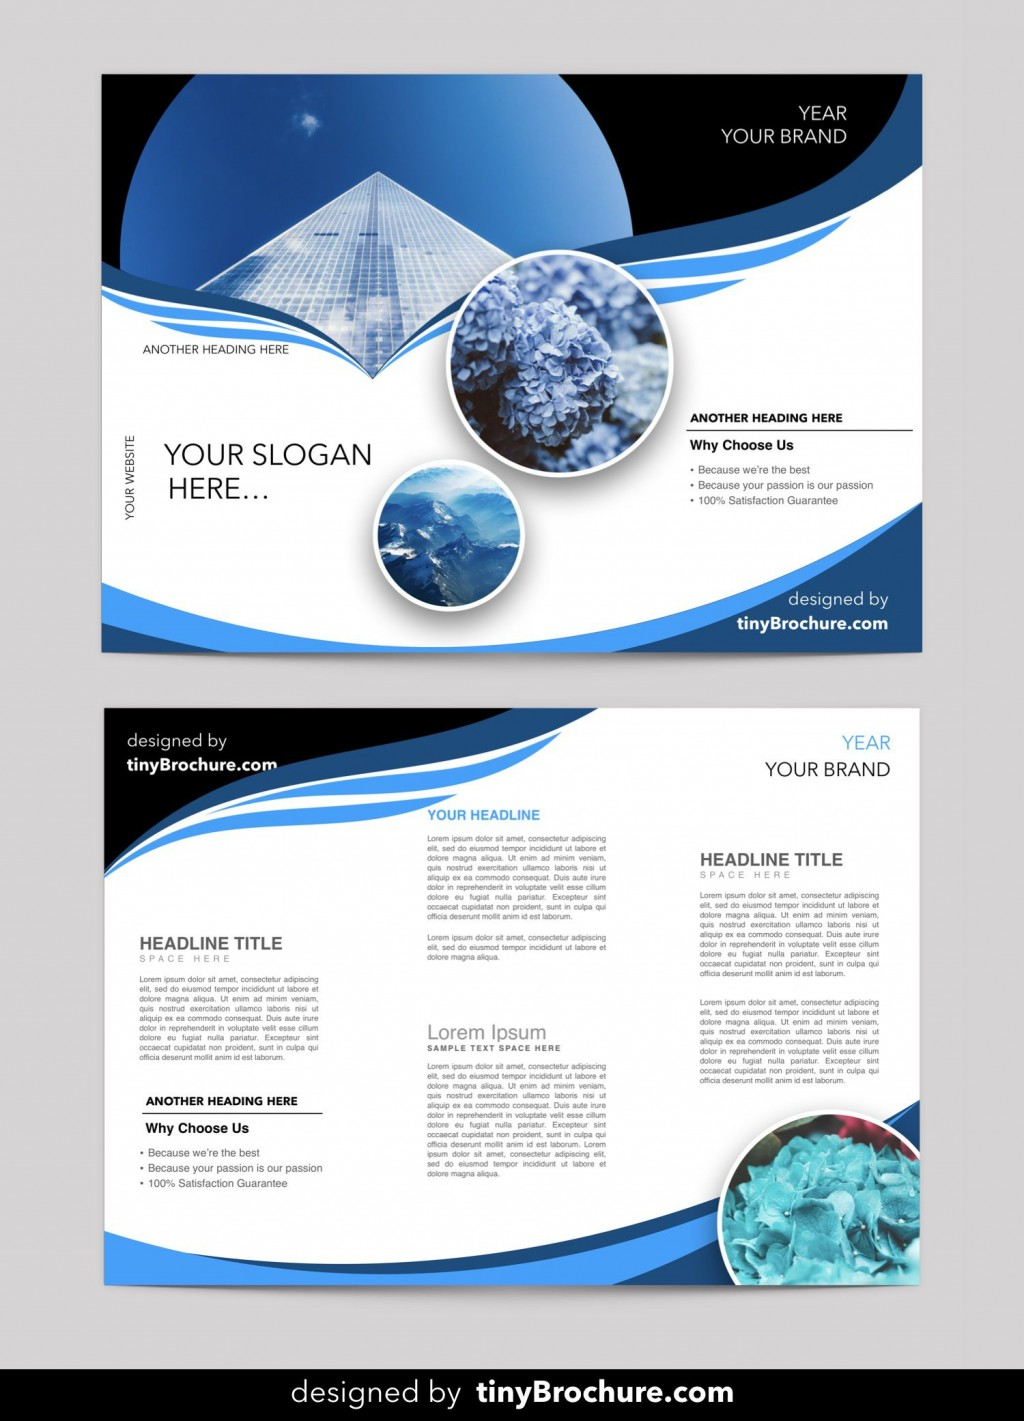 003 Phenomenal Busines Flyer Template Free Download Concept  Psd DesignLarge